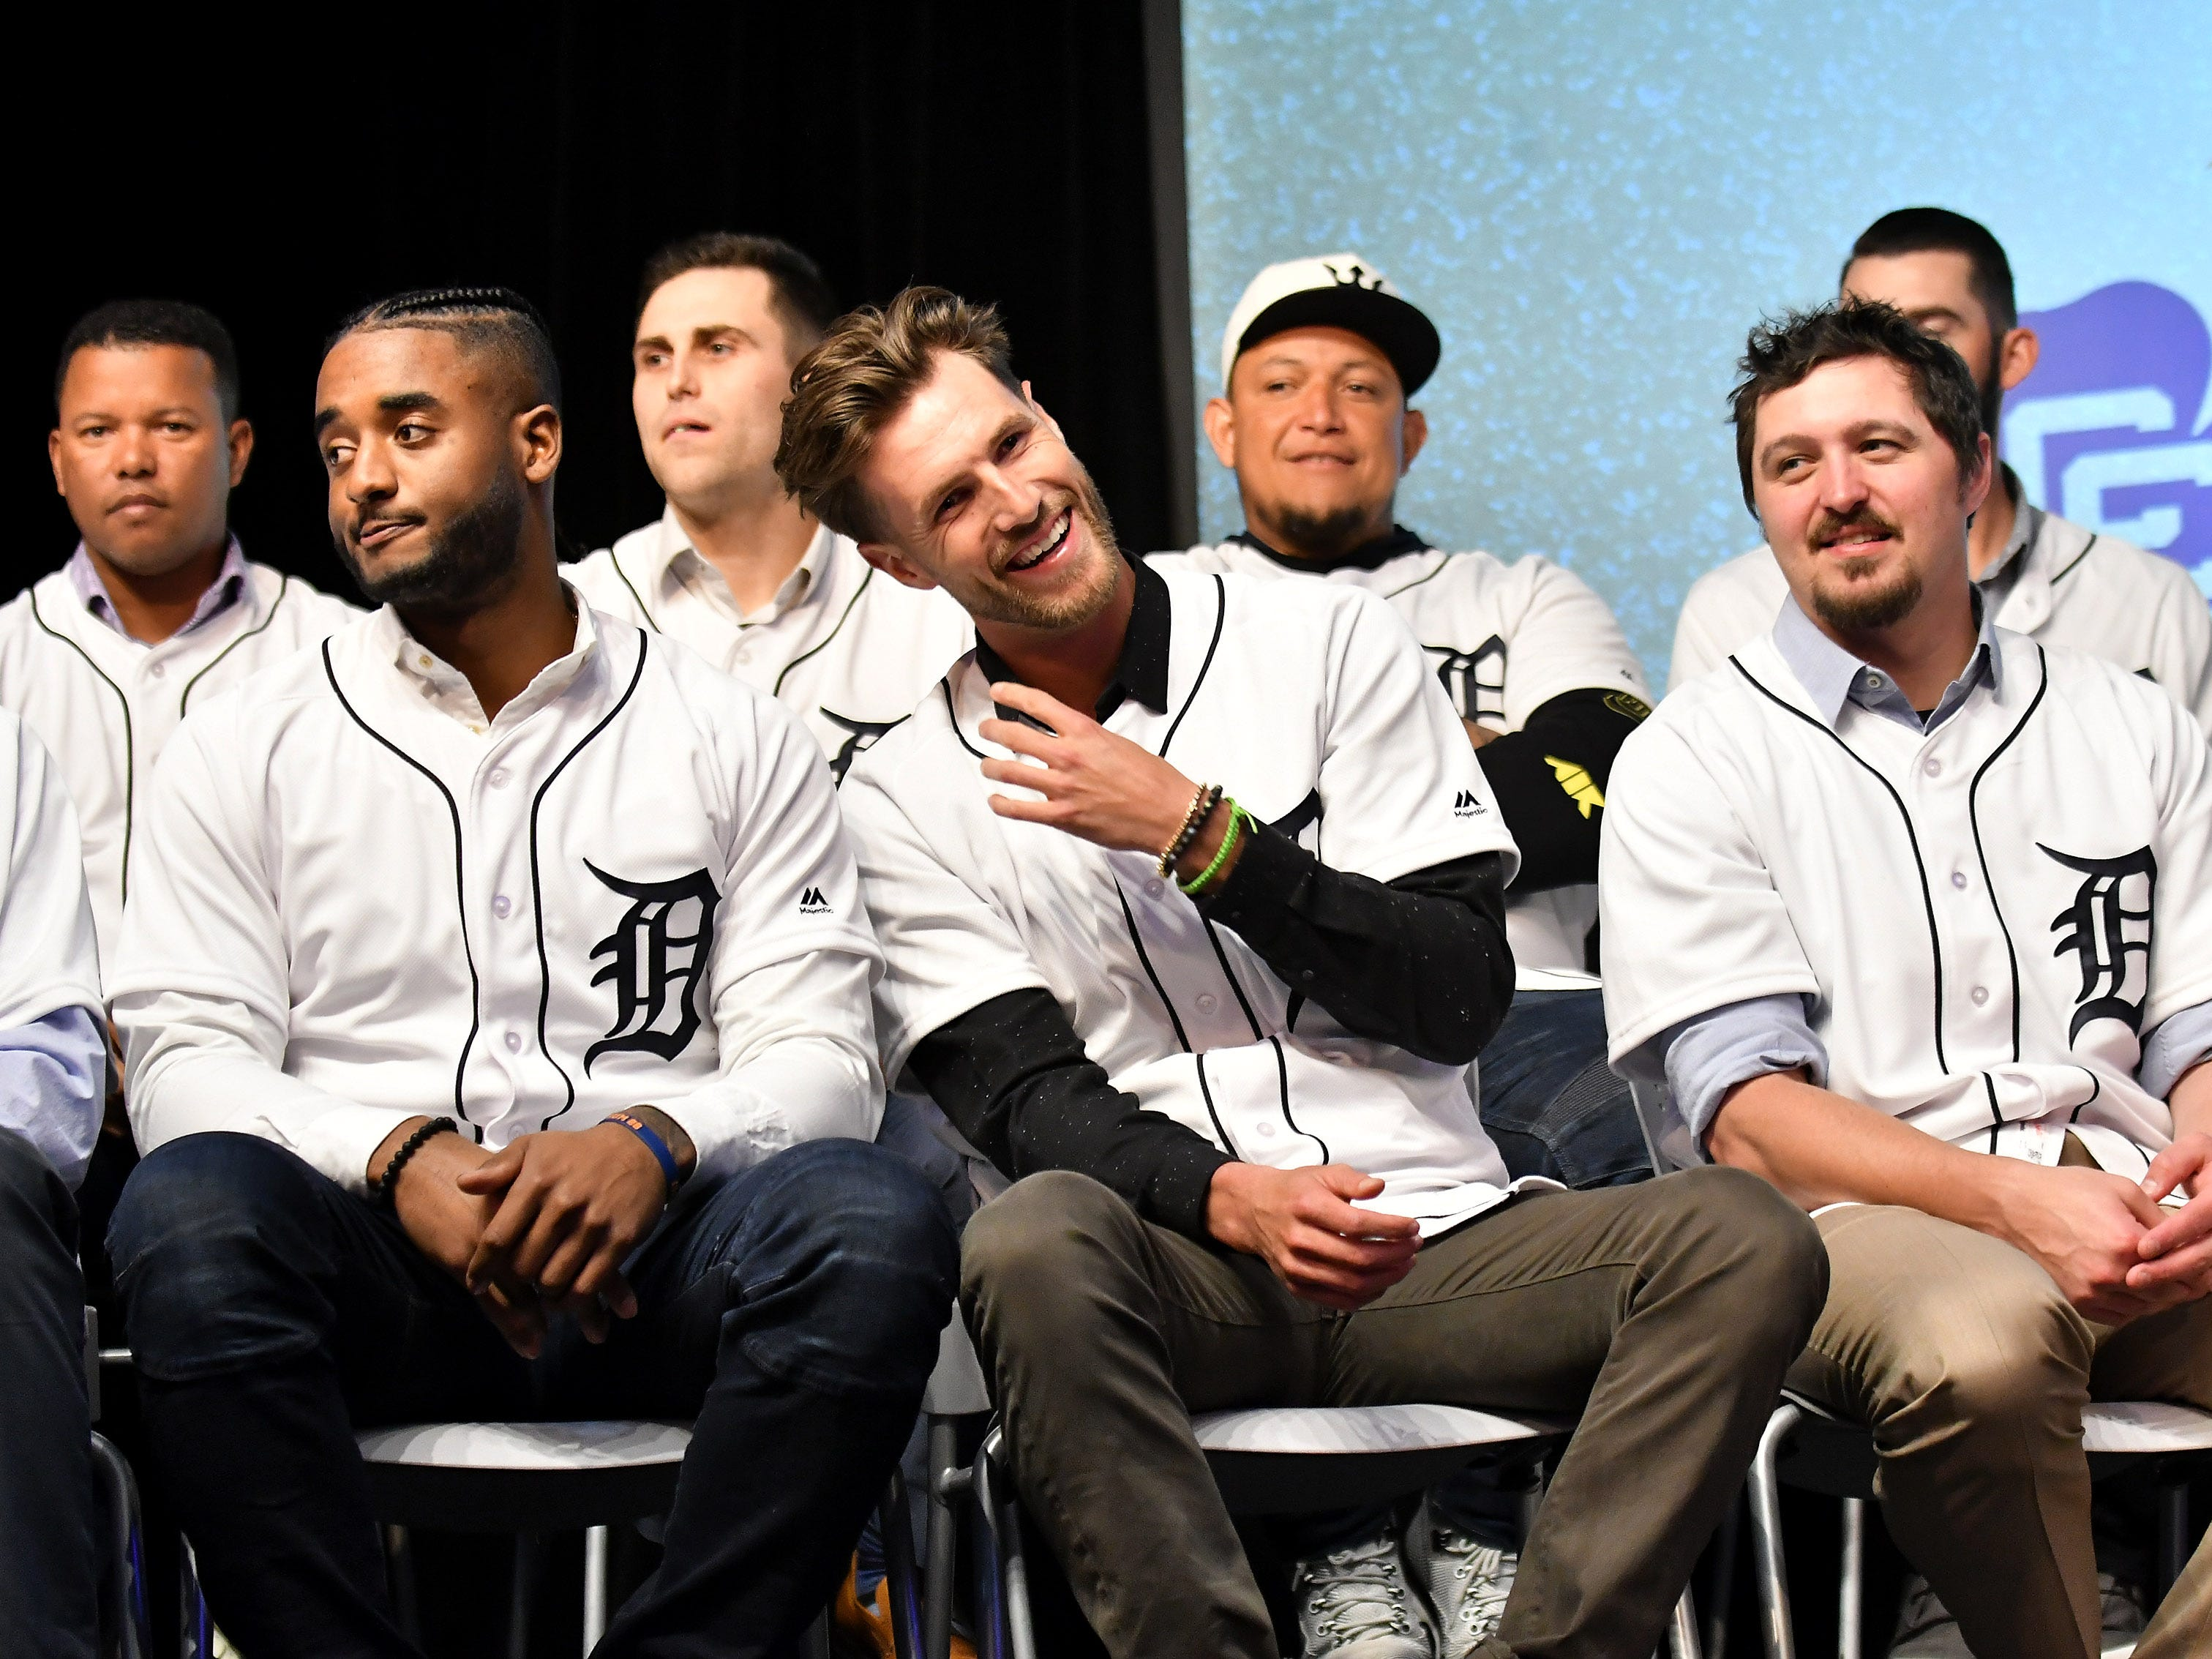 Tigers pitcher Shane Greene, center, laughs between his teammates, Niko Goodrum, left, and Blaine Hardy, right, at the Novi Civic Center.